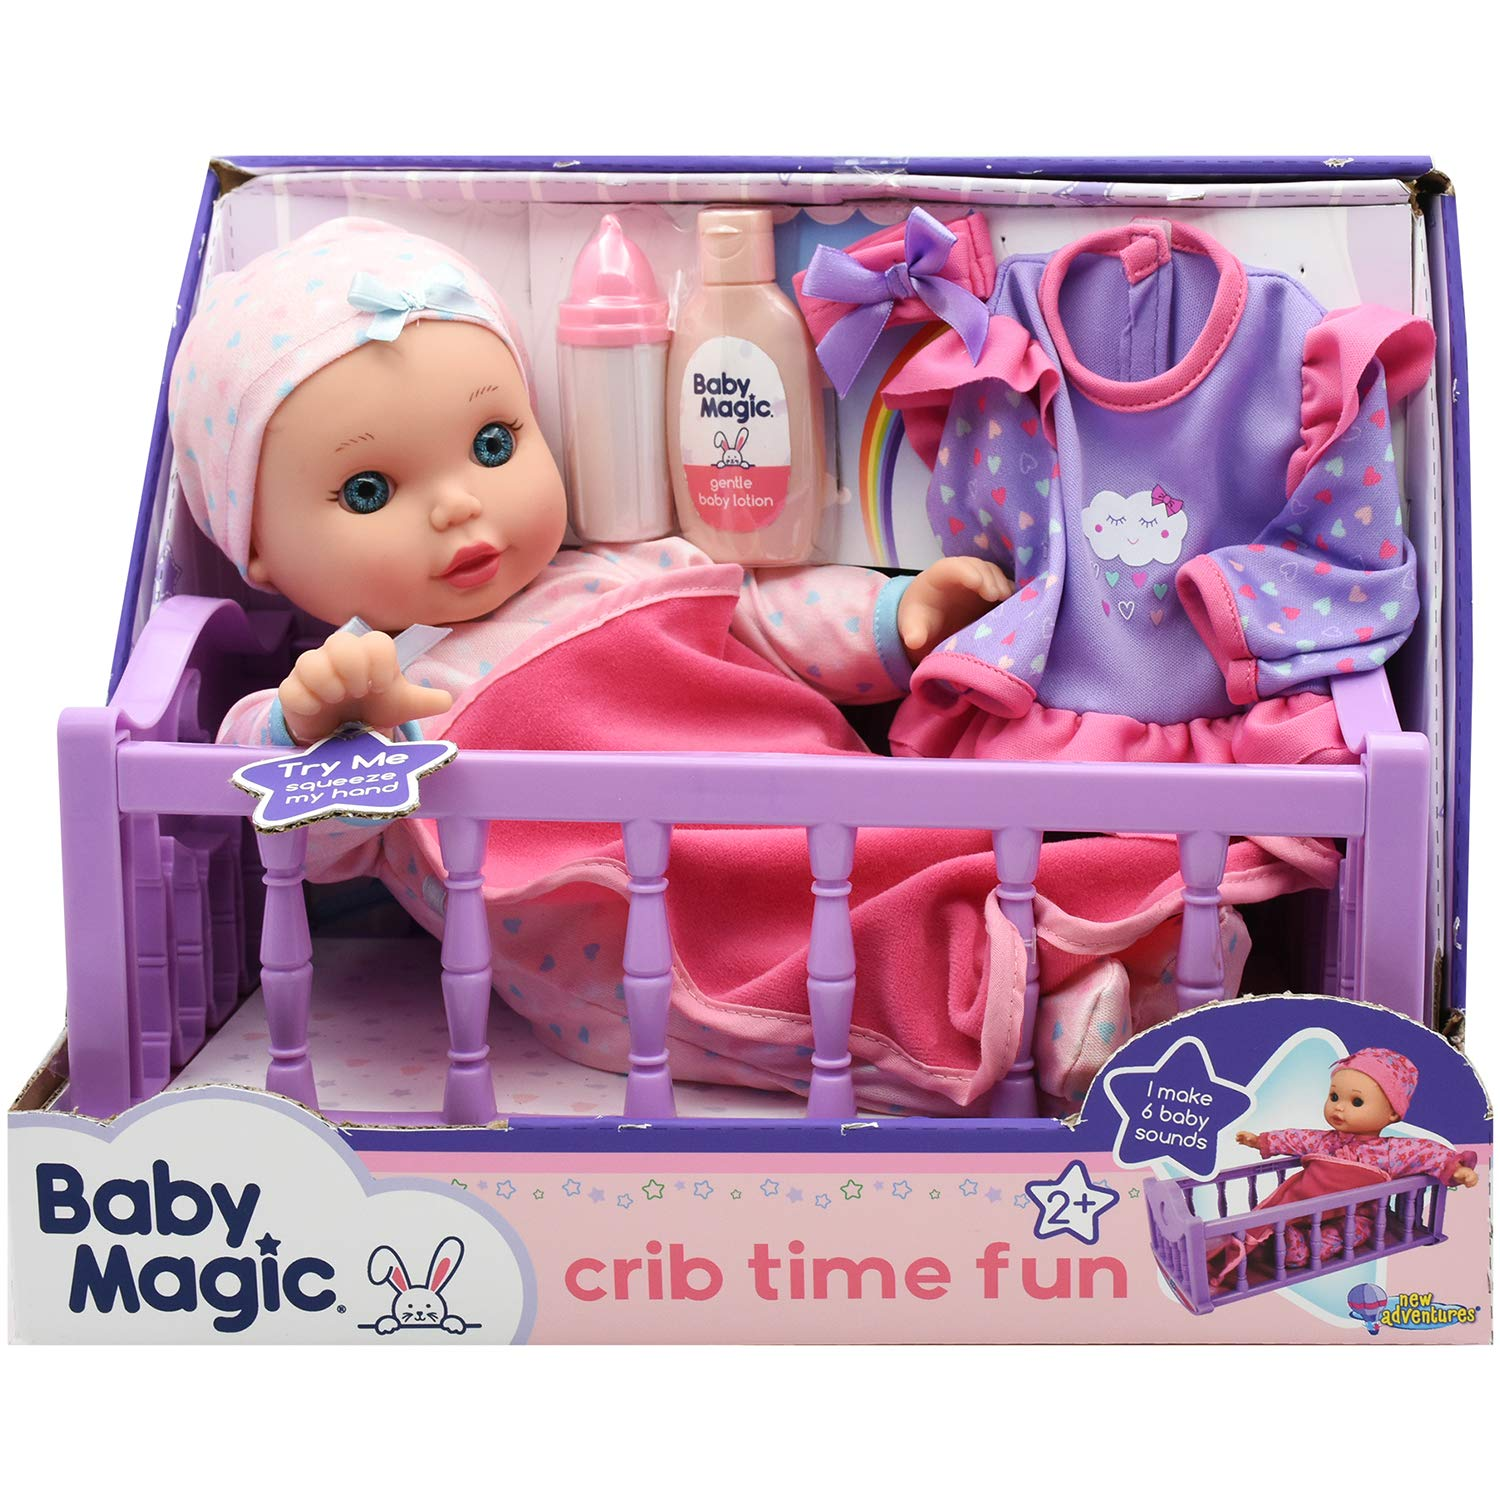 "Baby Magic Crib Time Fun (6556), 12"" Soft body baby doll, 6 different baby sounds, molded crib, accessories and bonus outfit. Age 2+, Caucasian [Amazon Exclusive]"